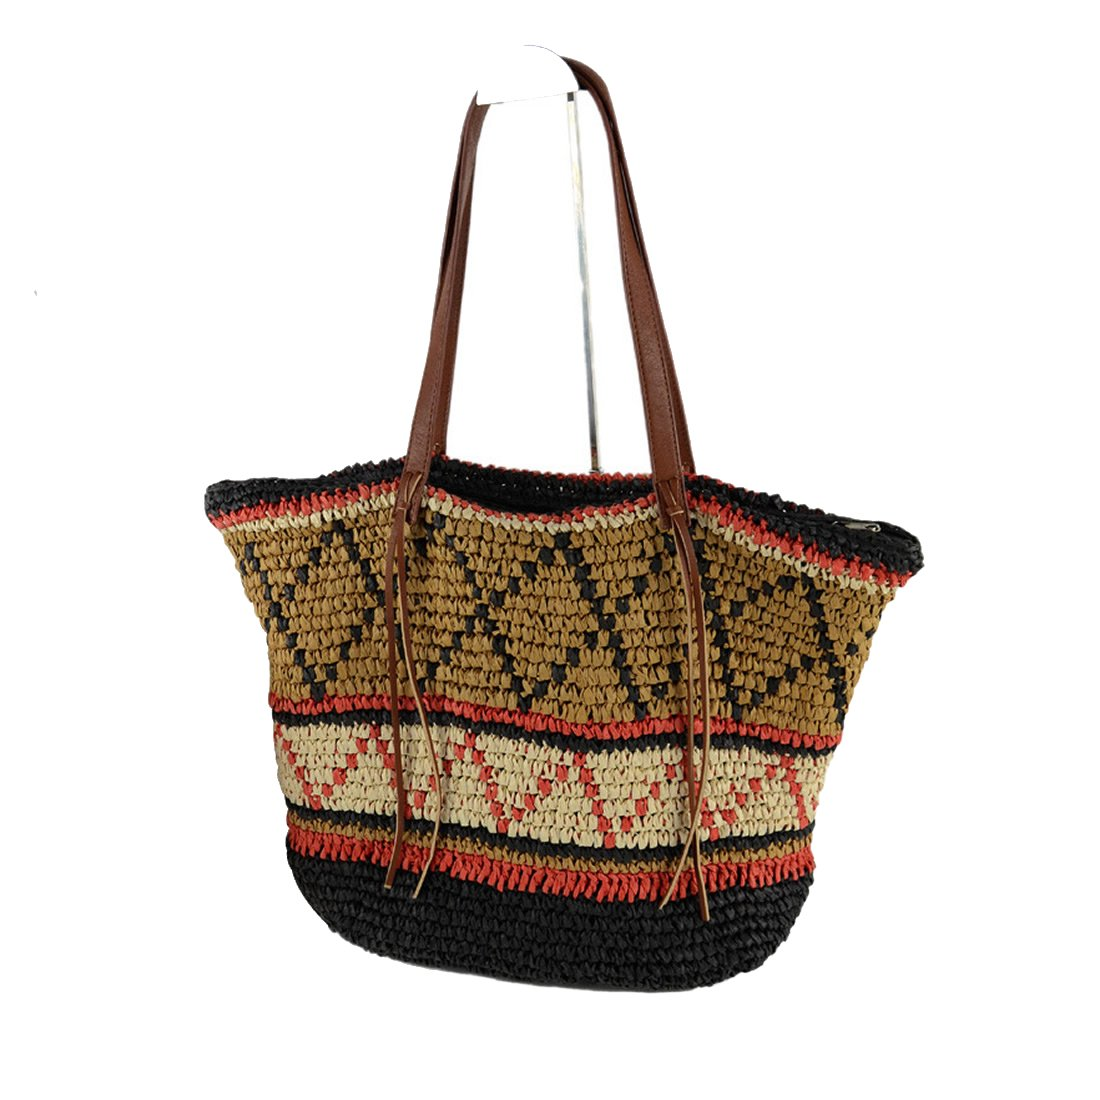 e592f33605fd Amazon.com: Straw Hobo Bag, Womens Straw Woven Large Hobo Bag Summer ...